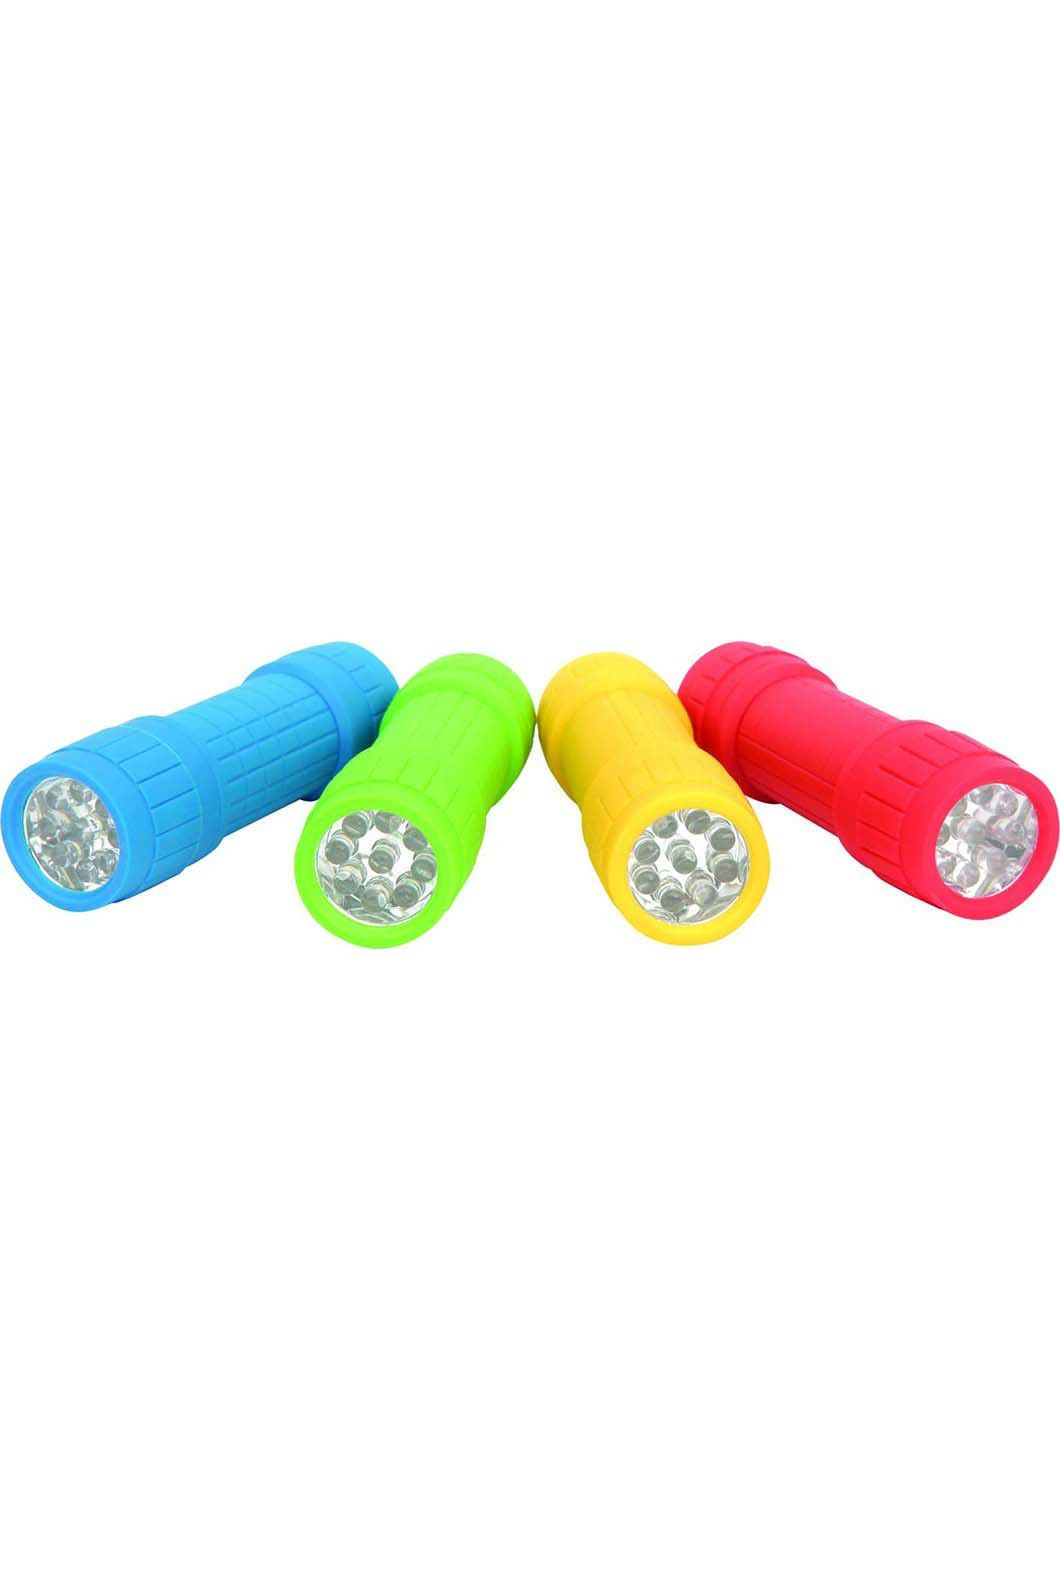 9 LED Mini Torch, None, hi-res